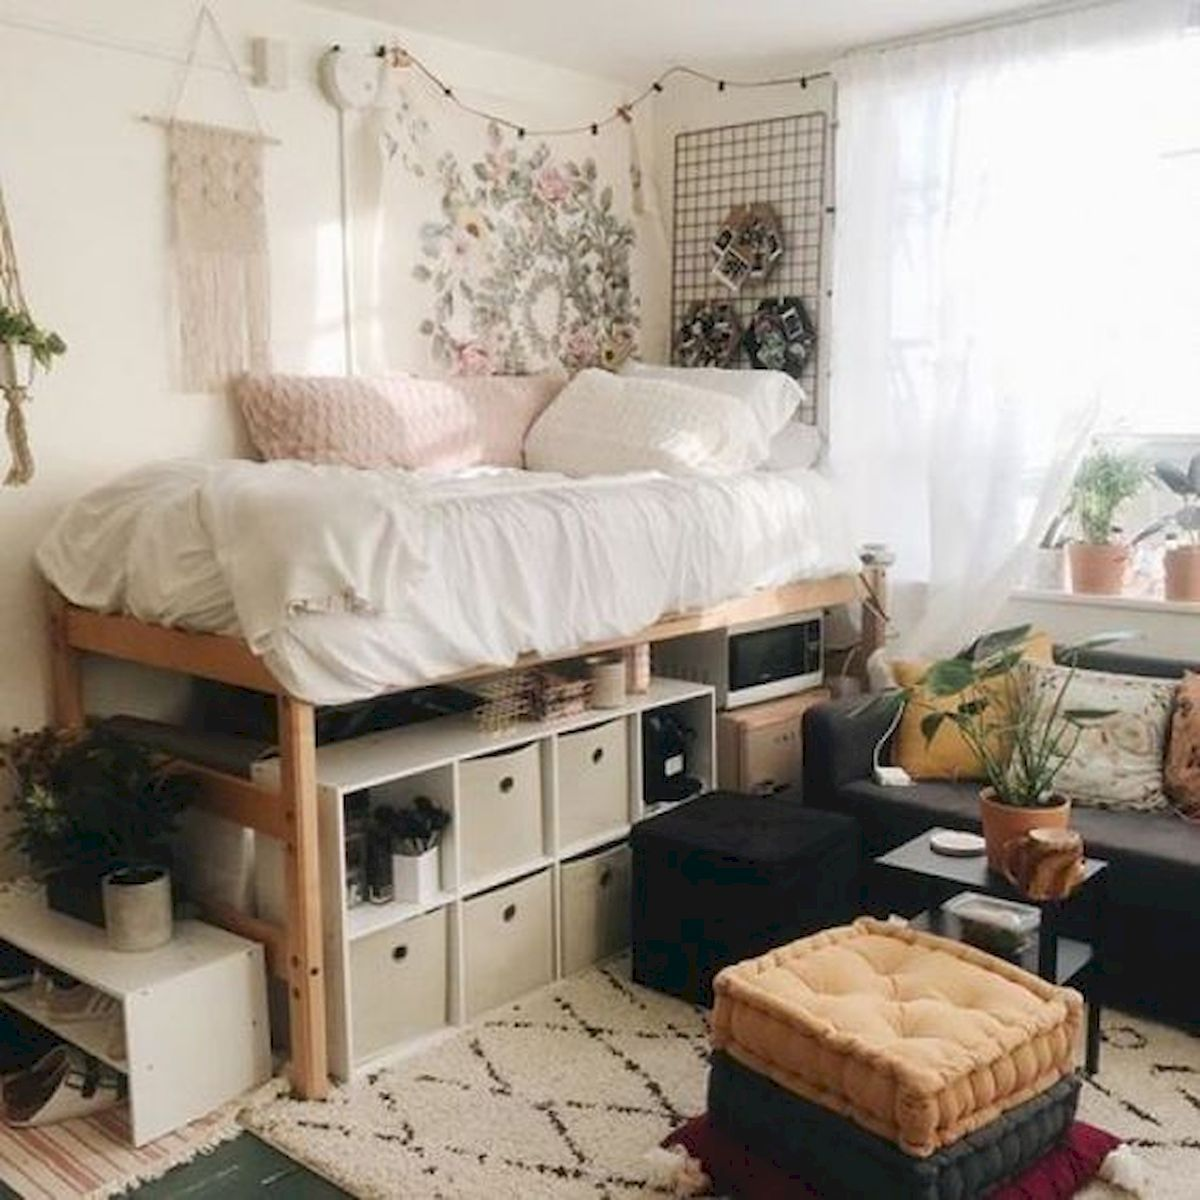 33 Awesome College Bedroom Decor Ideas And Remodel #collegedormroomideas